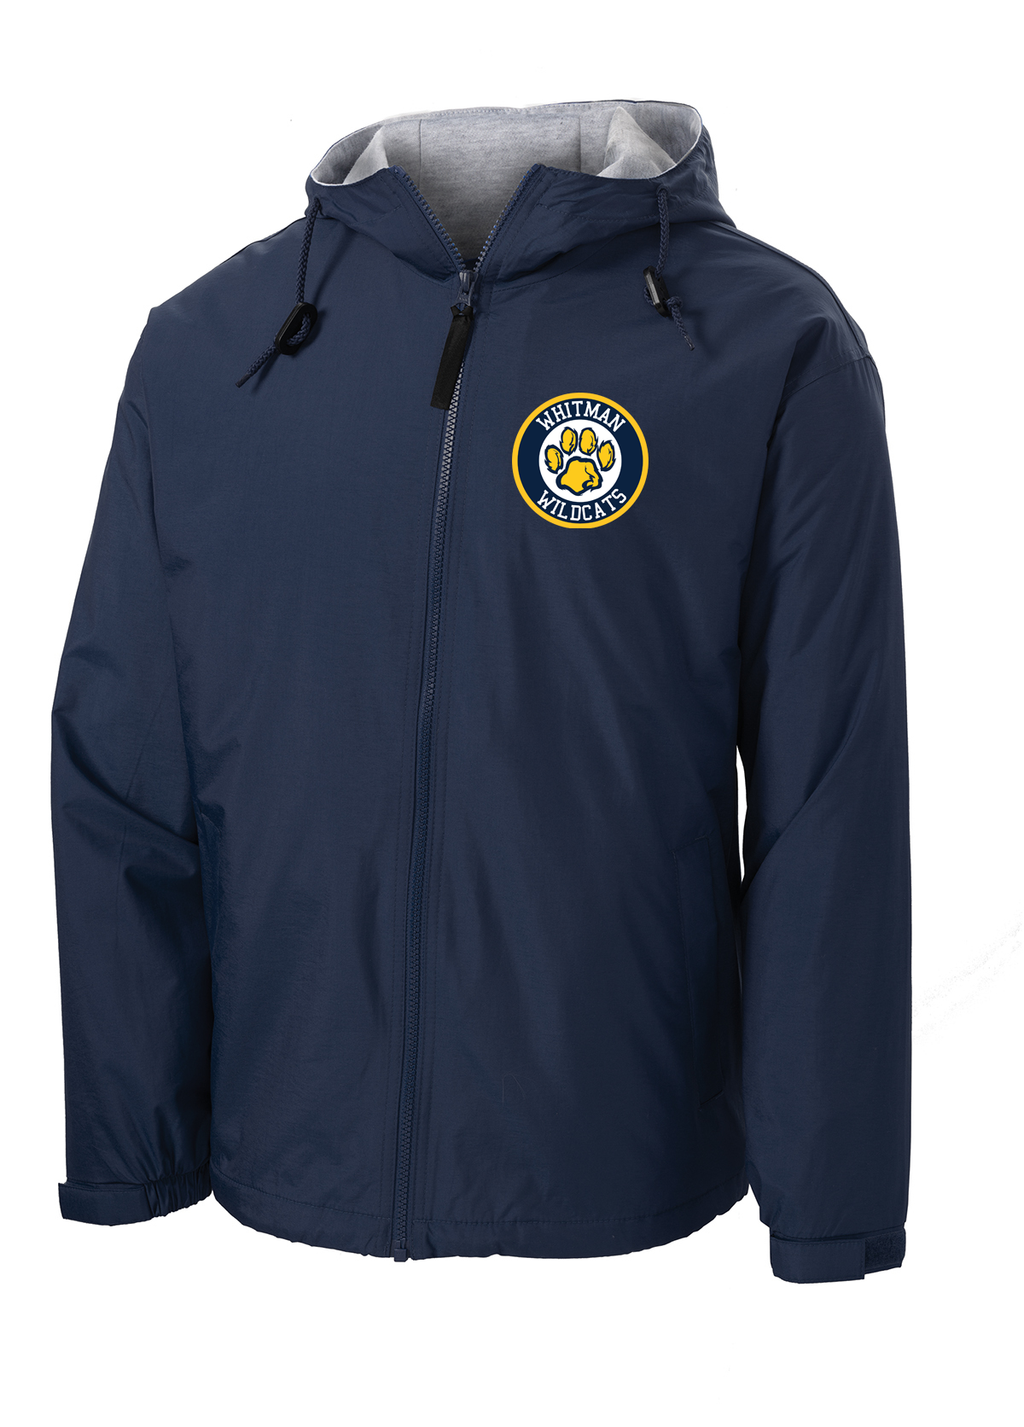 Whitman Wildcats Hooded Jacket